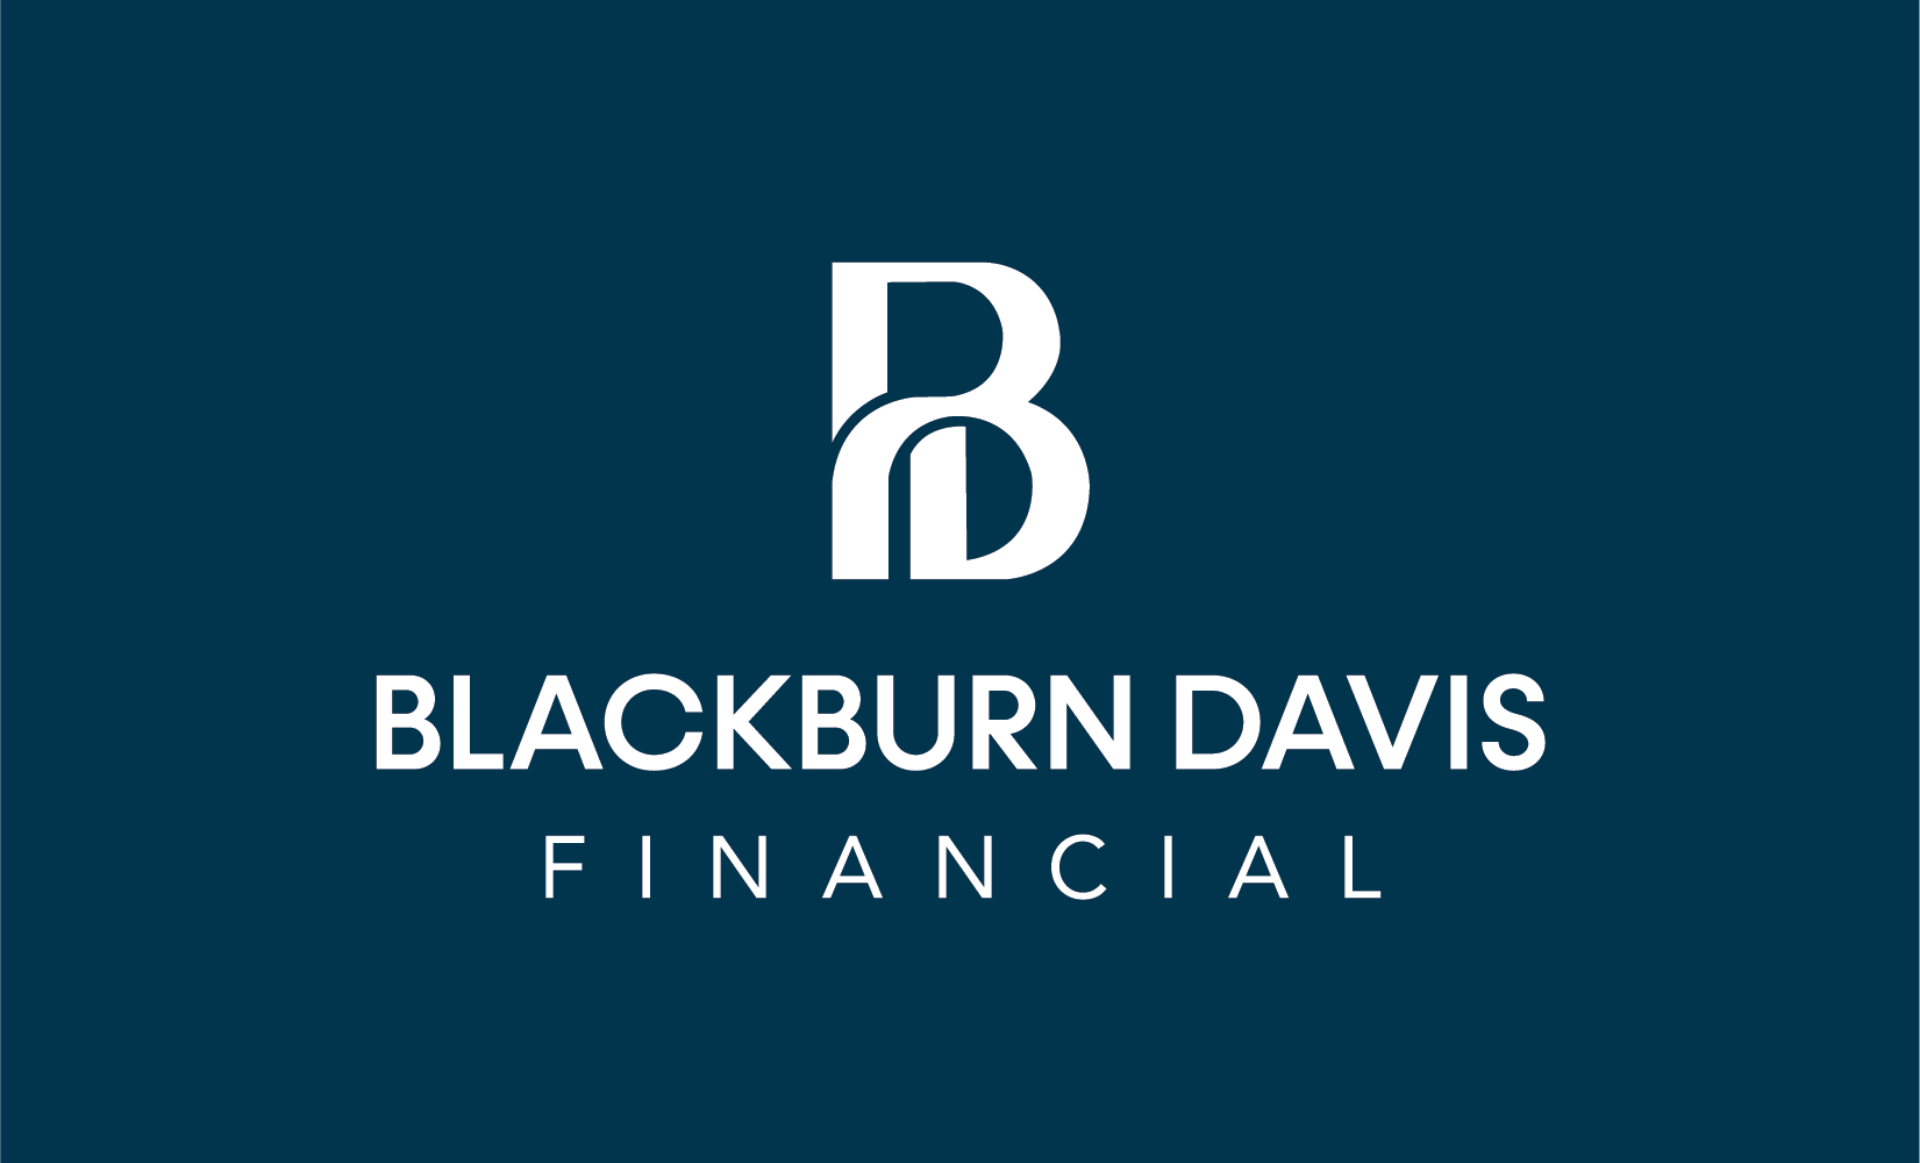 Blackburn Davis Financial